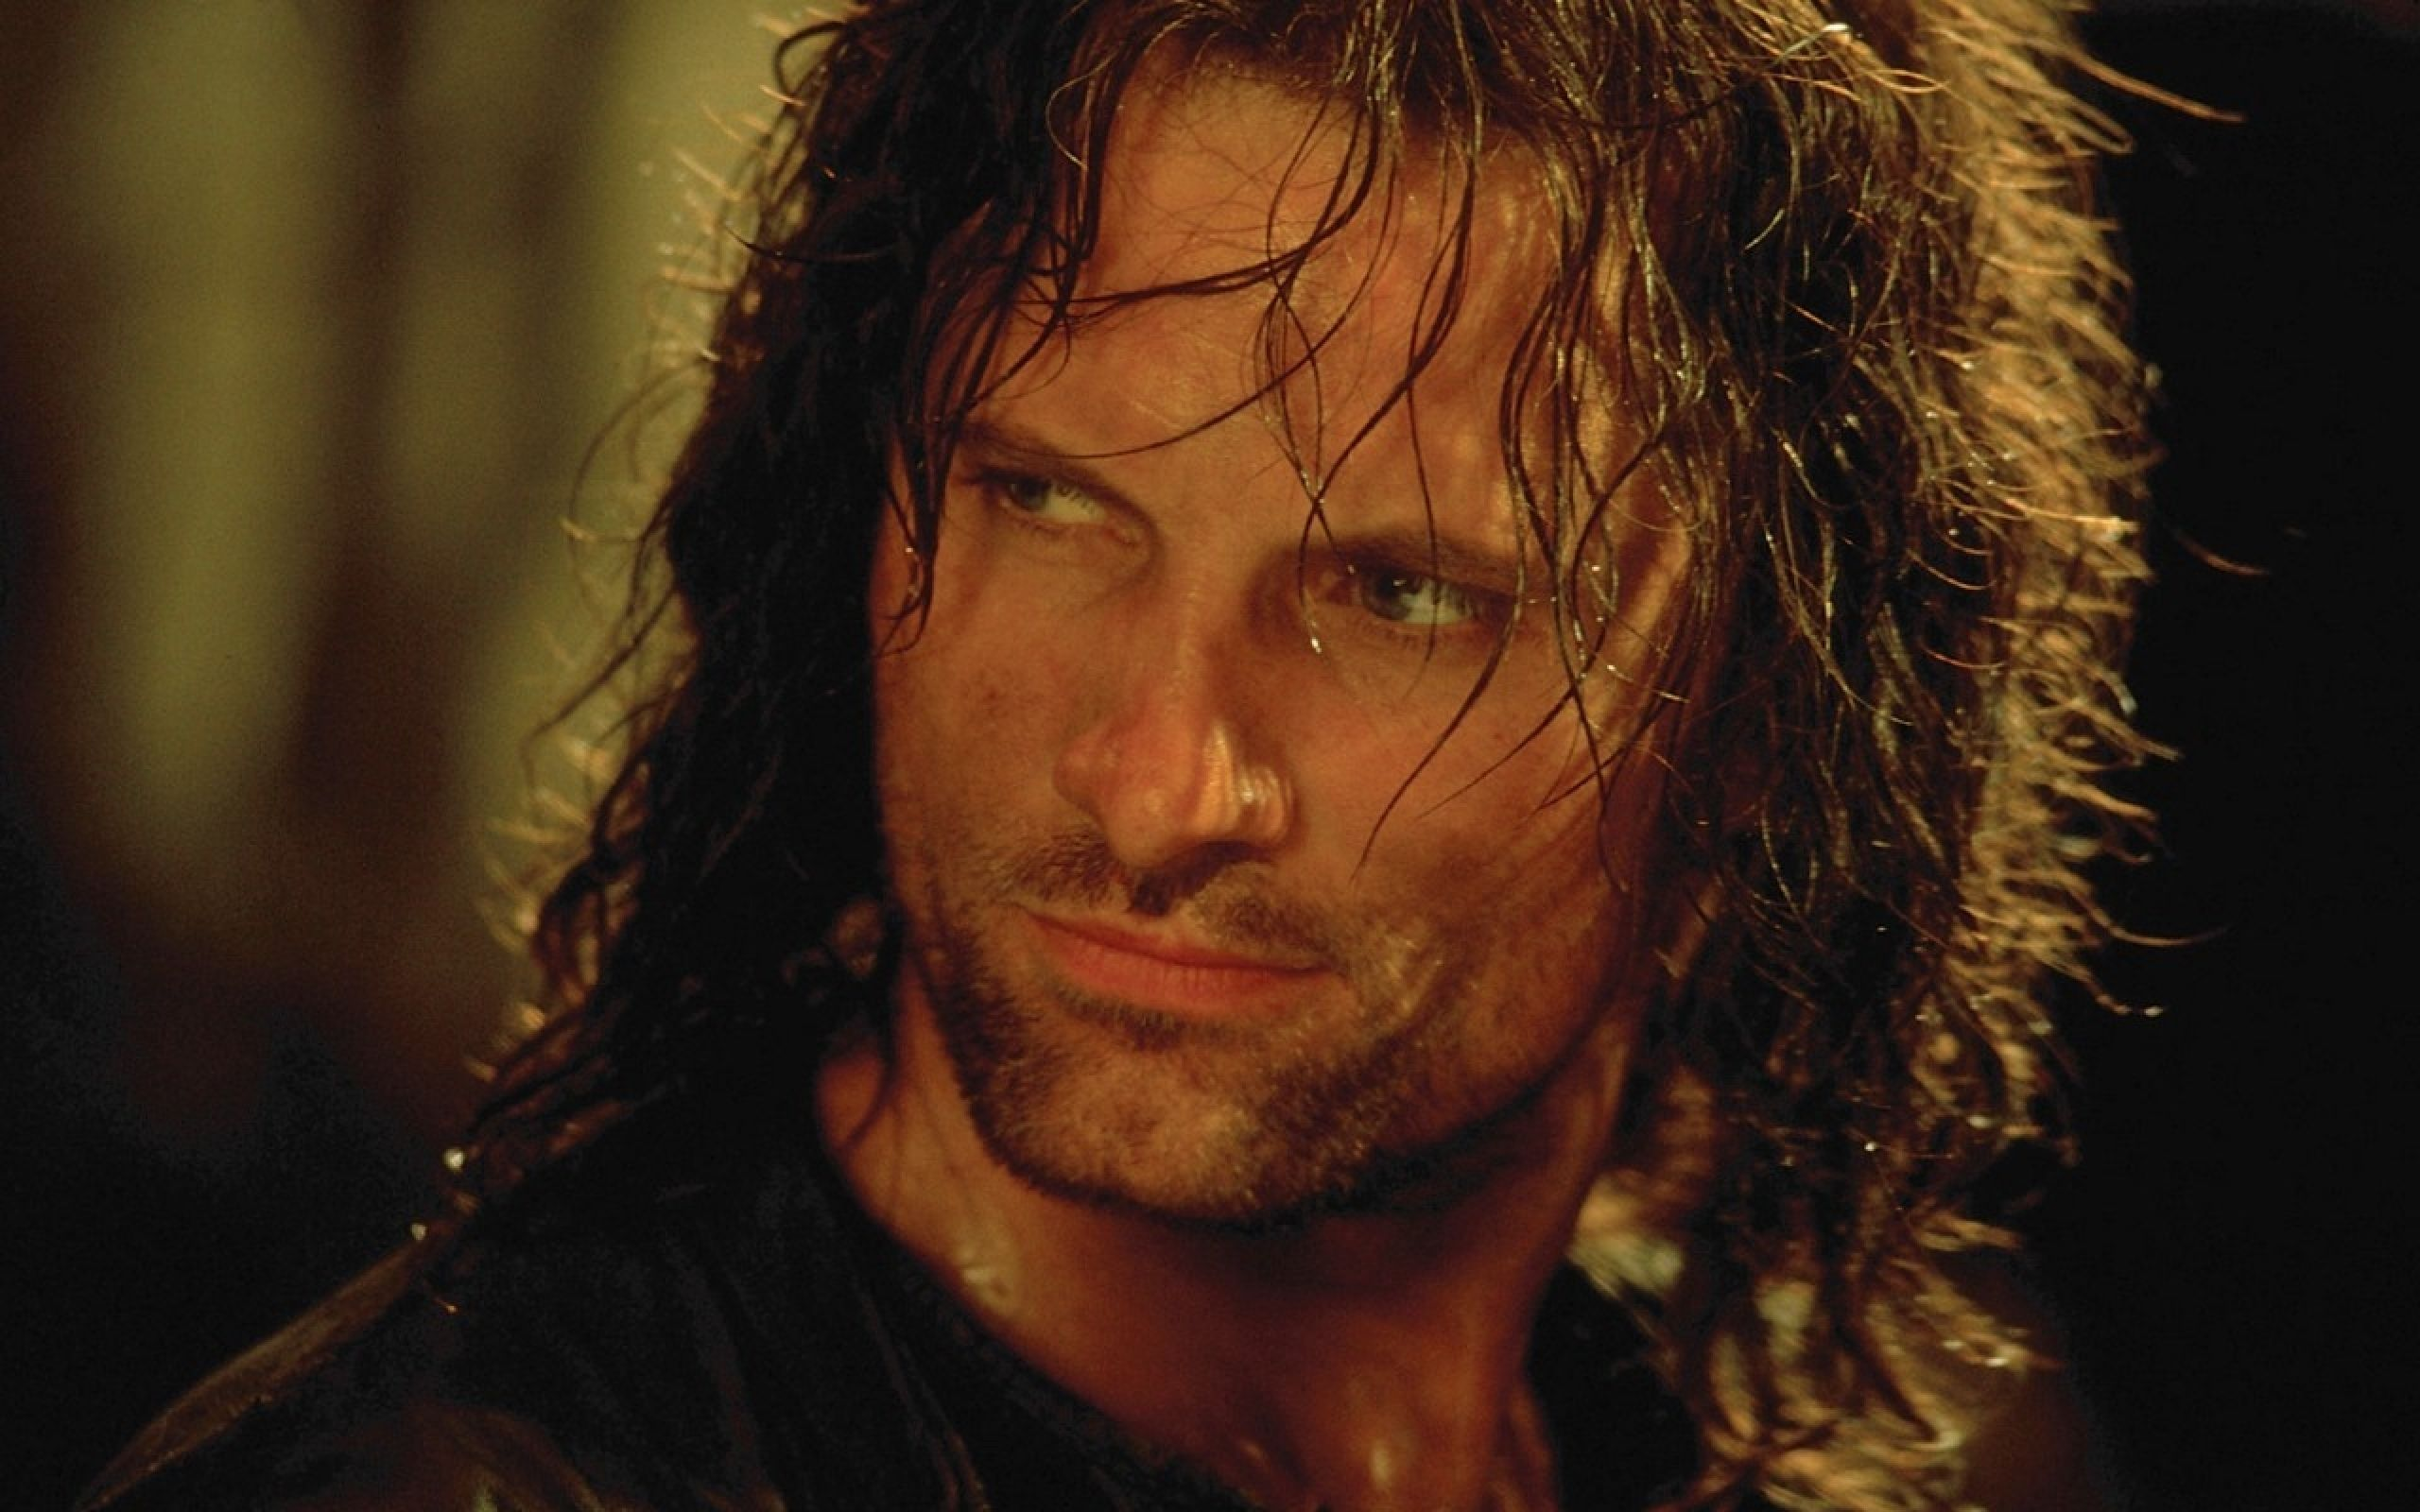 Lotr Aragorn Wallpapers Top Free Lotr Aragorn Backgrounds